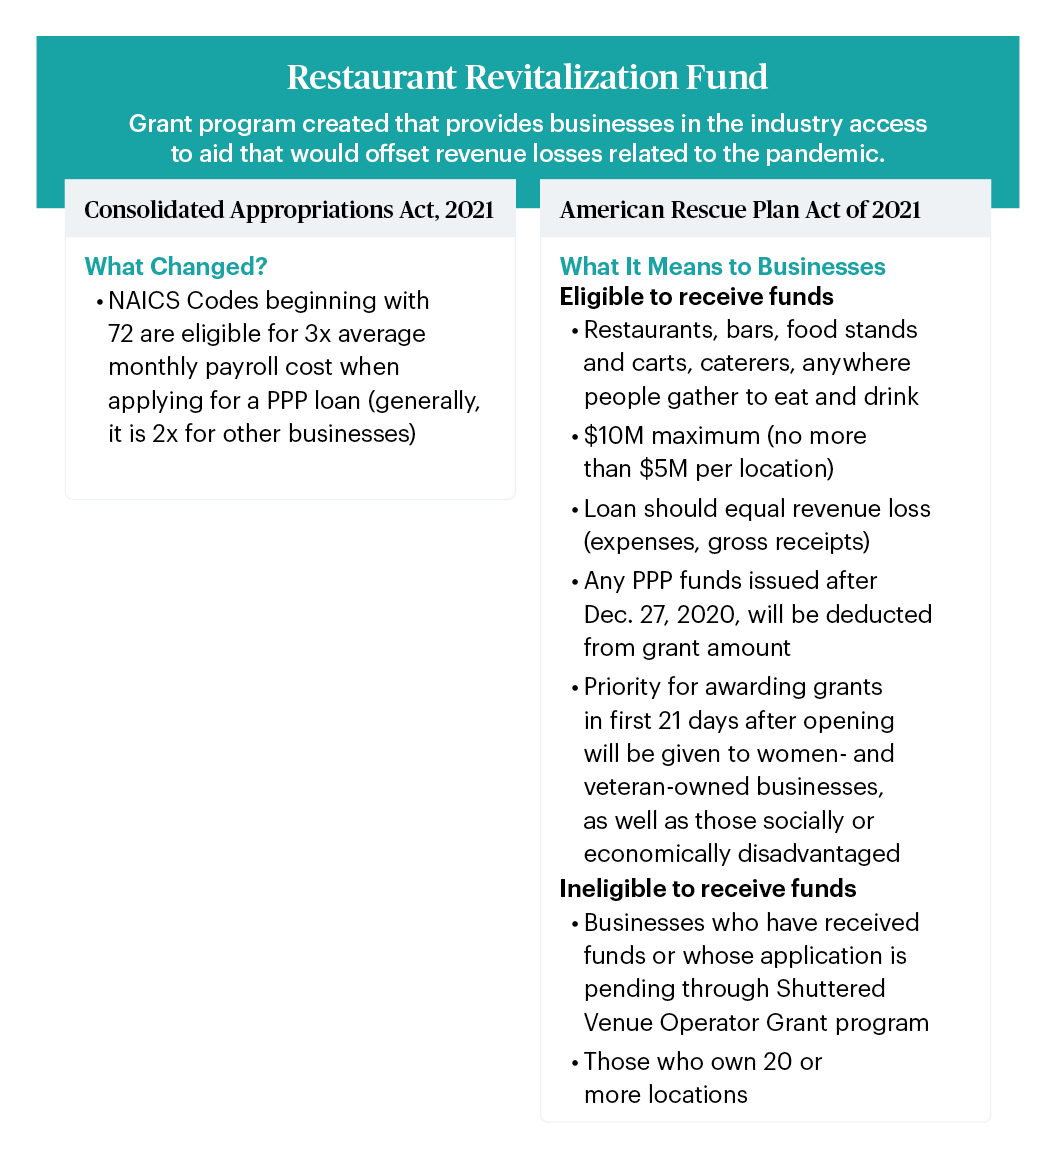 Details about the Restaurant Revitalization Fund introduced under the American Rescue Plan Act